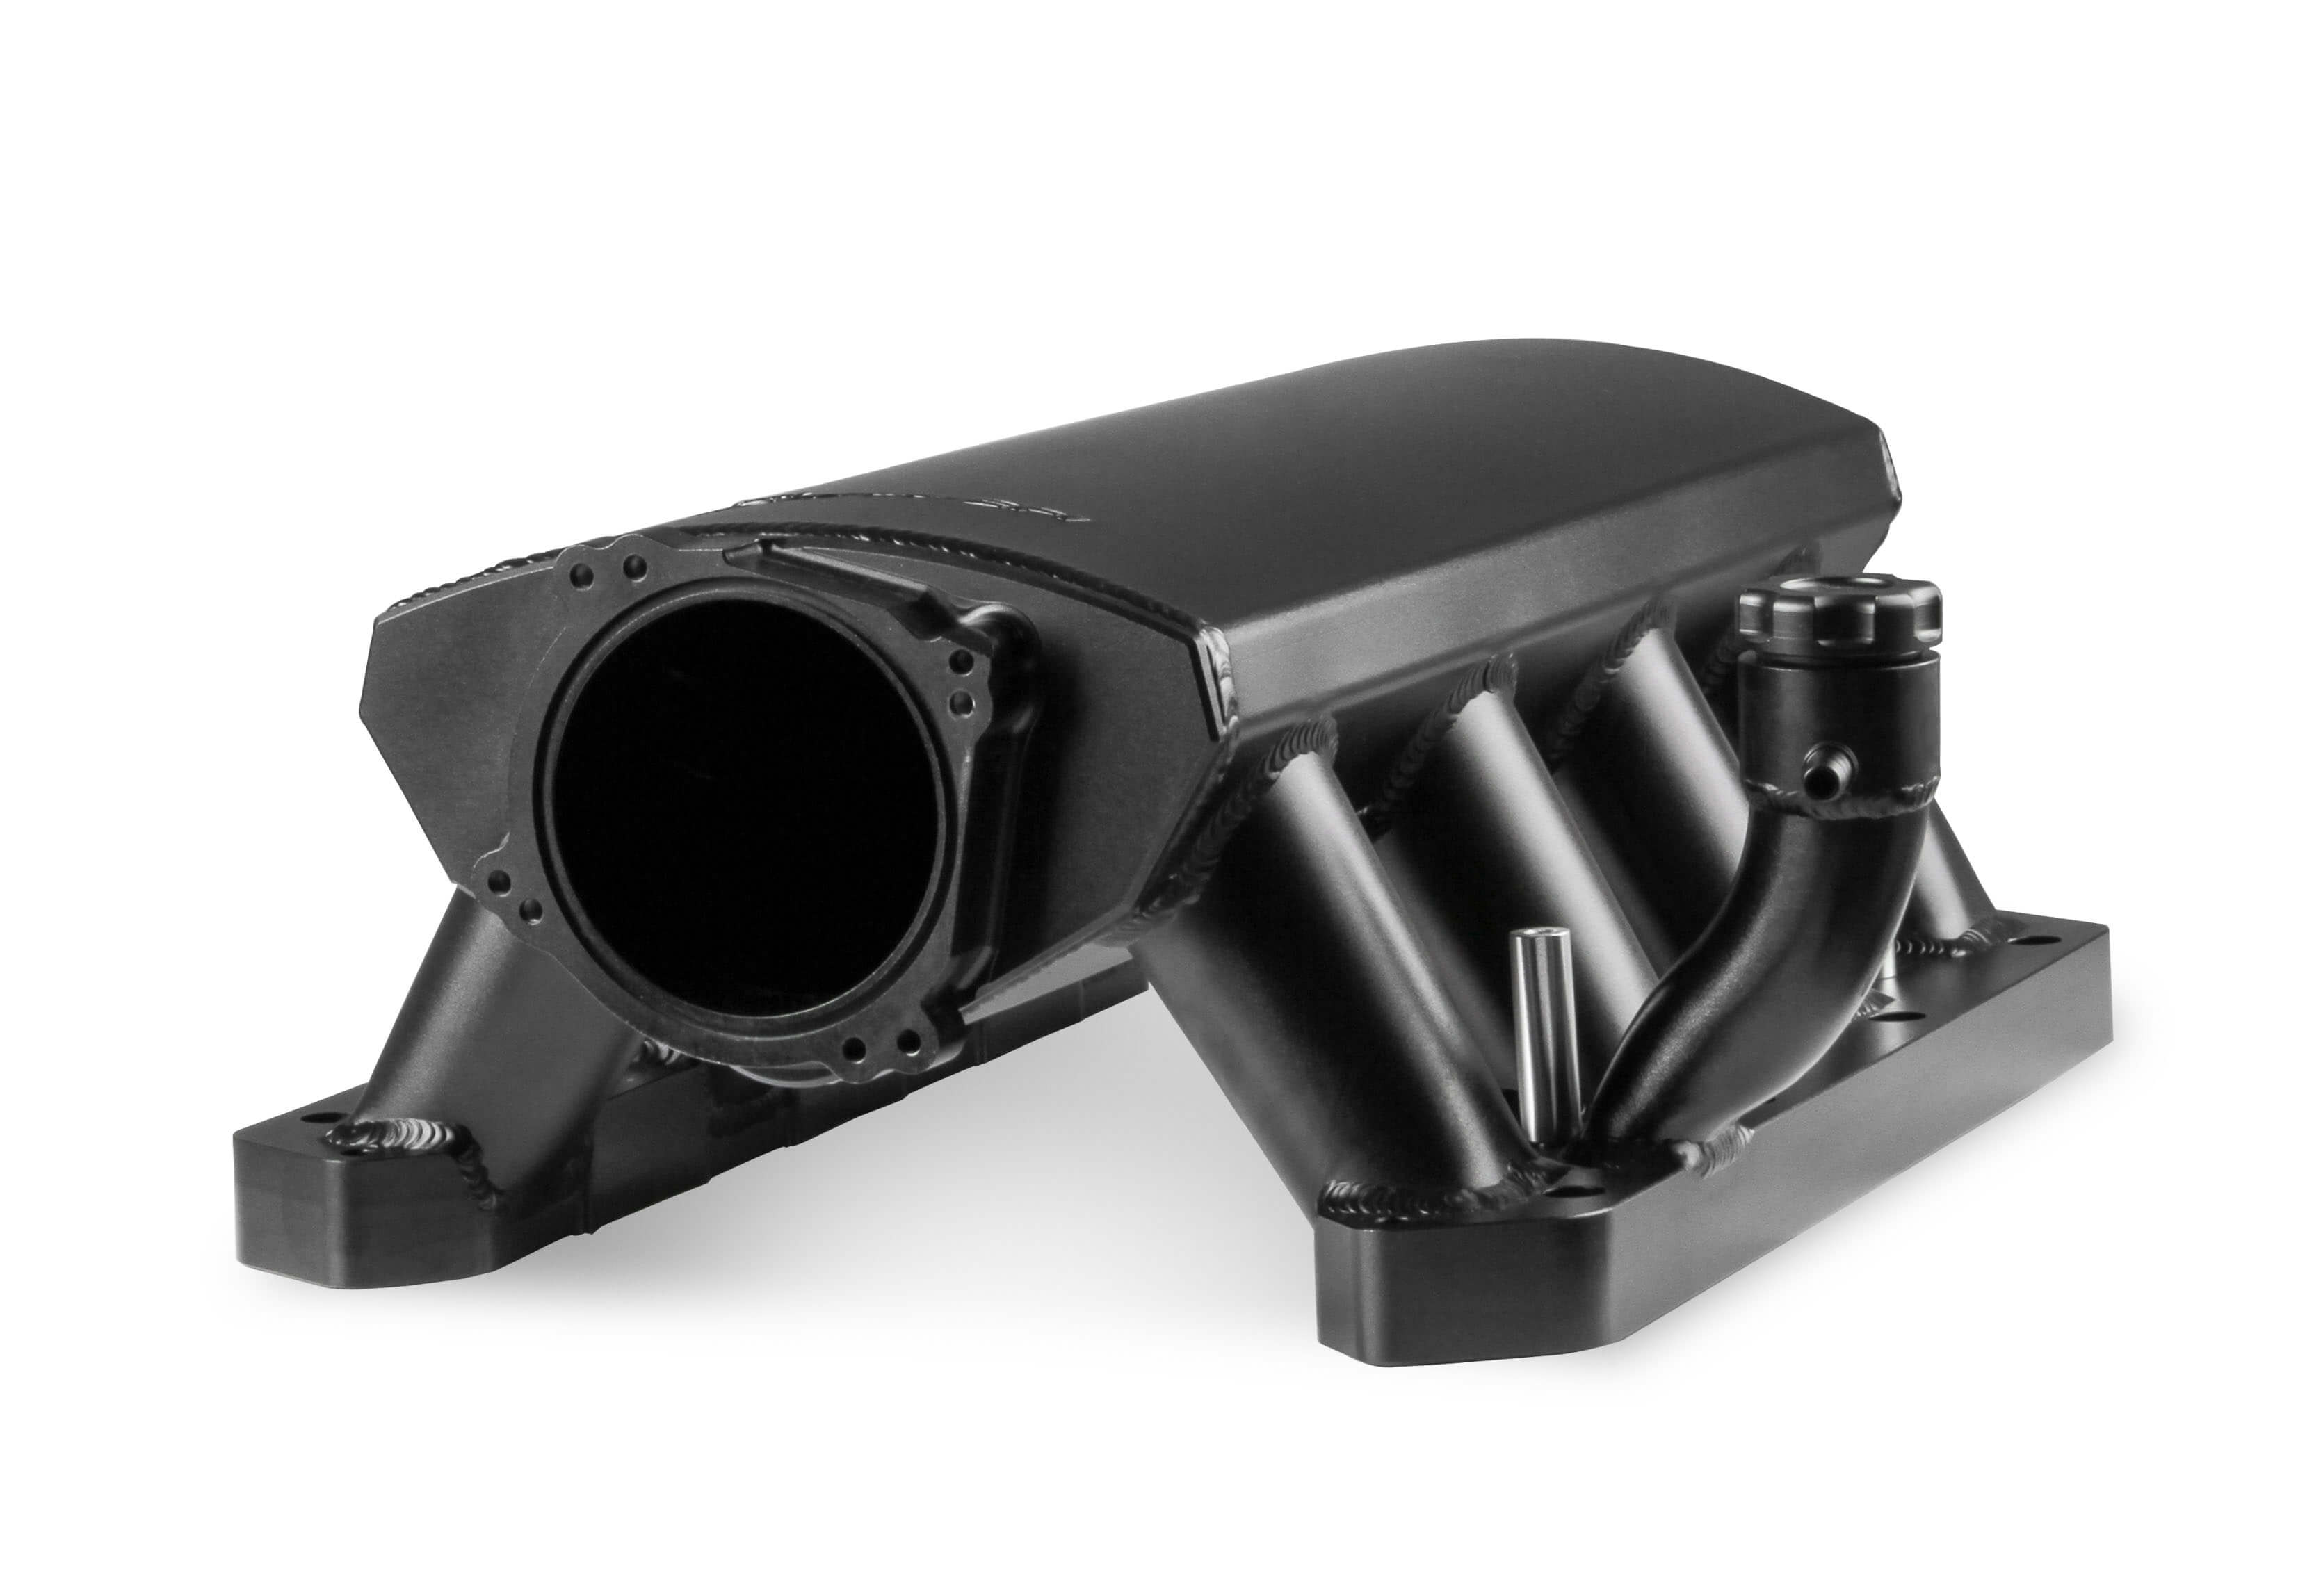 Holley Sniper Dodge 5.7L/6.1L/6.4L Hi-Ram 90mm Dual Throttle Body Sheet Metal Fabricated Intake Manifold w/Fuel Rail Kit - Black